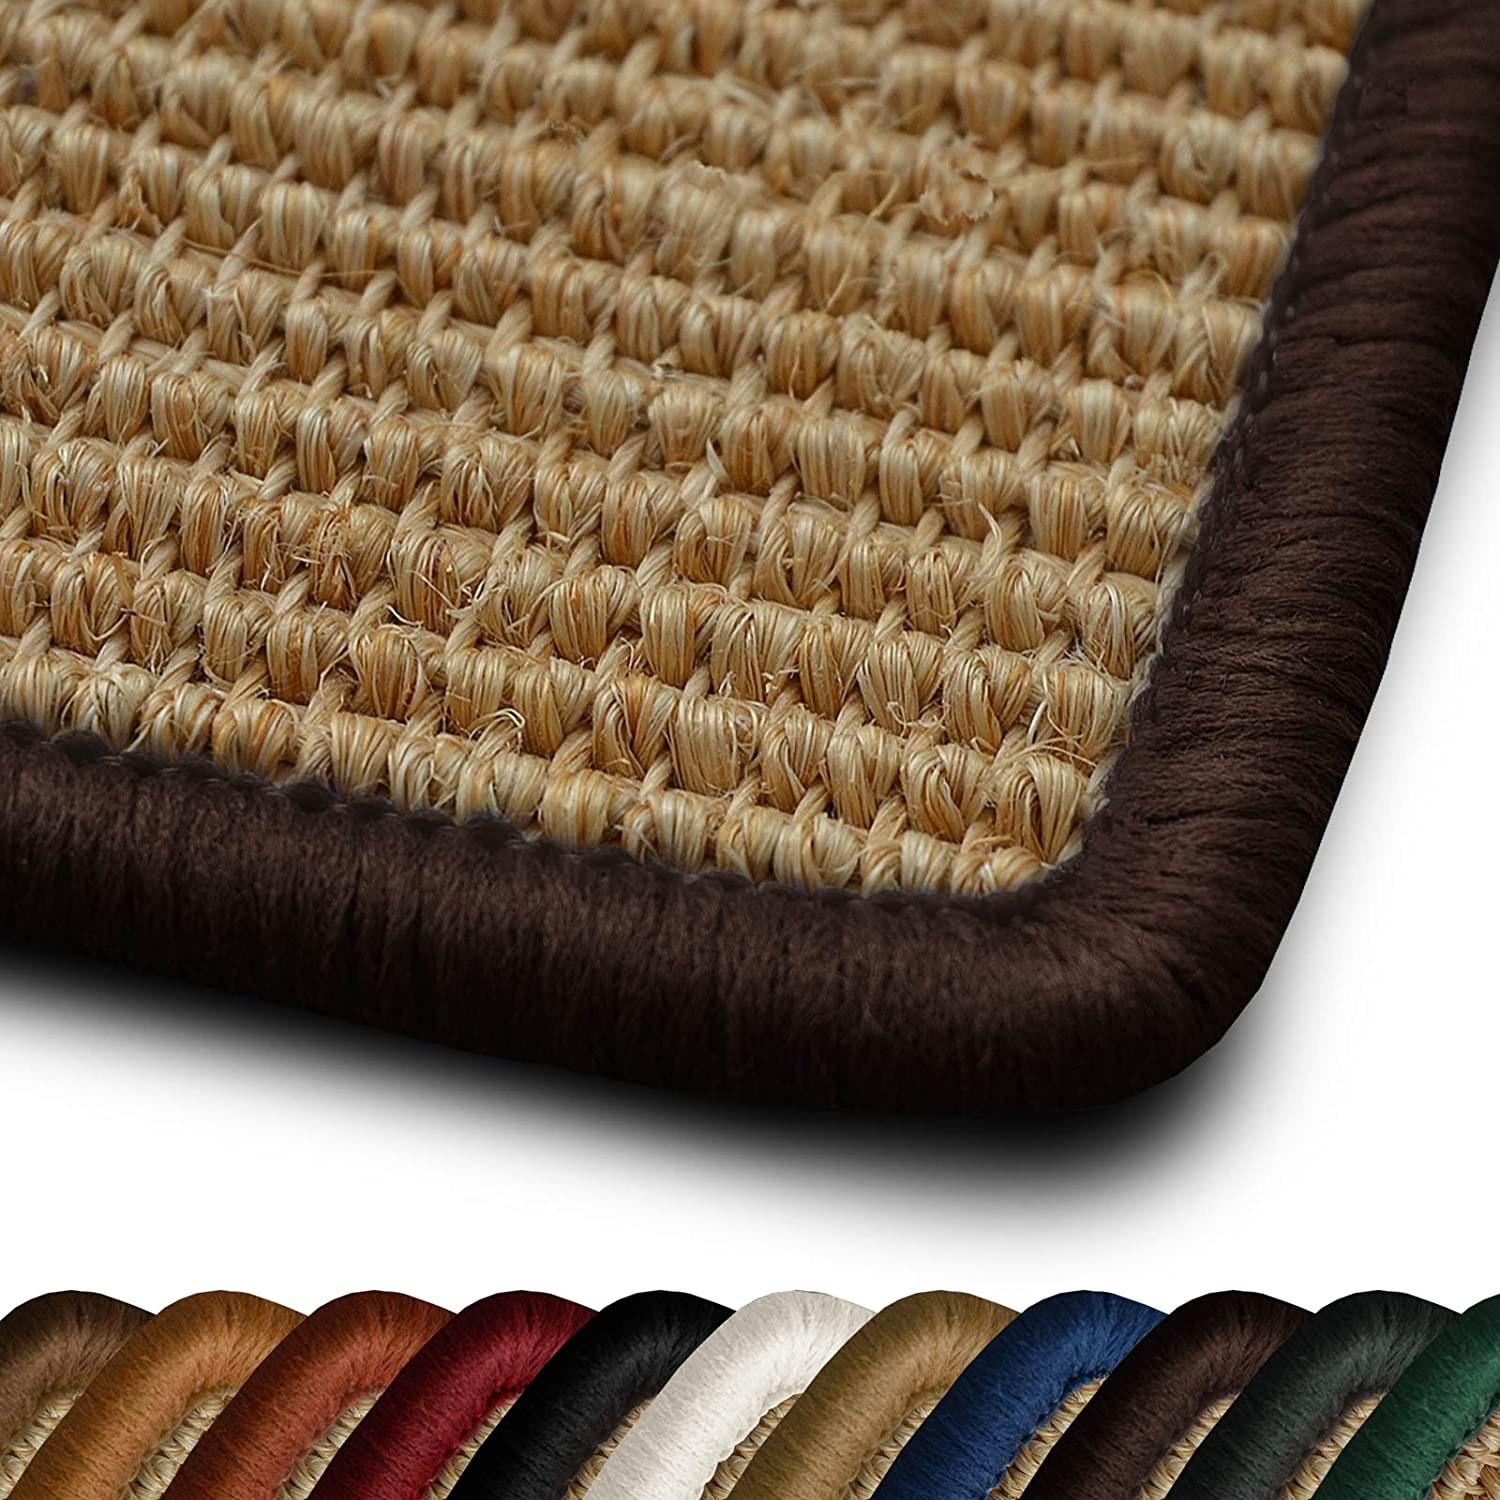 Living Room Rug Salvador Collection with Dark Brown Border 120 x 180 cm Anti-Static Kitchen Carpet With Non-Slip Latex Backing casa pura Natural Sisal Rug